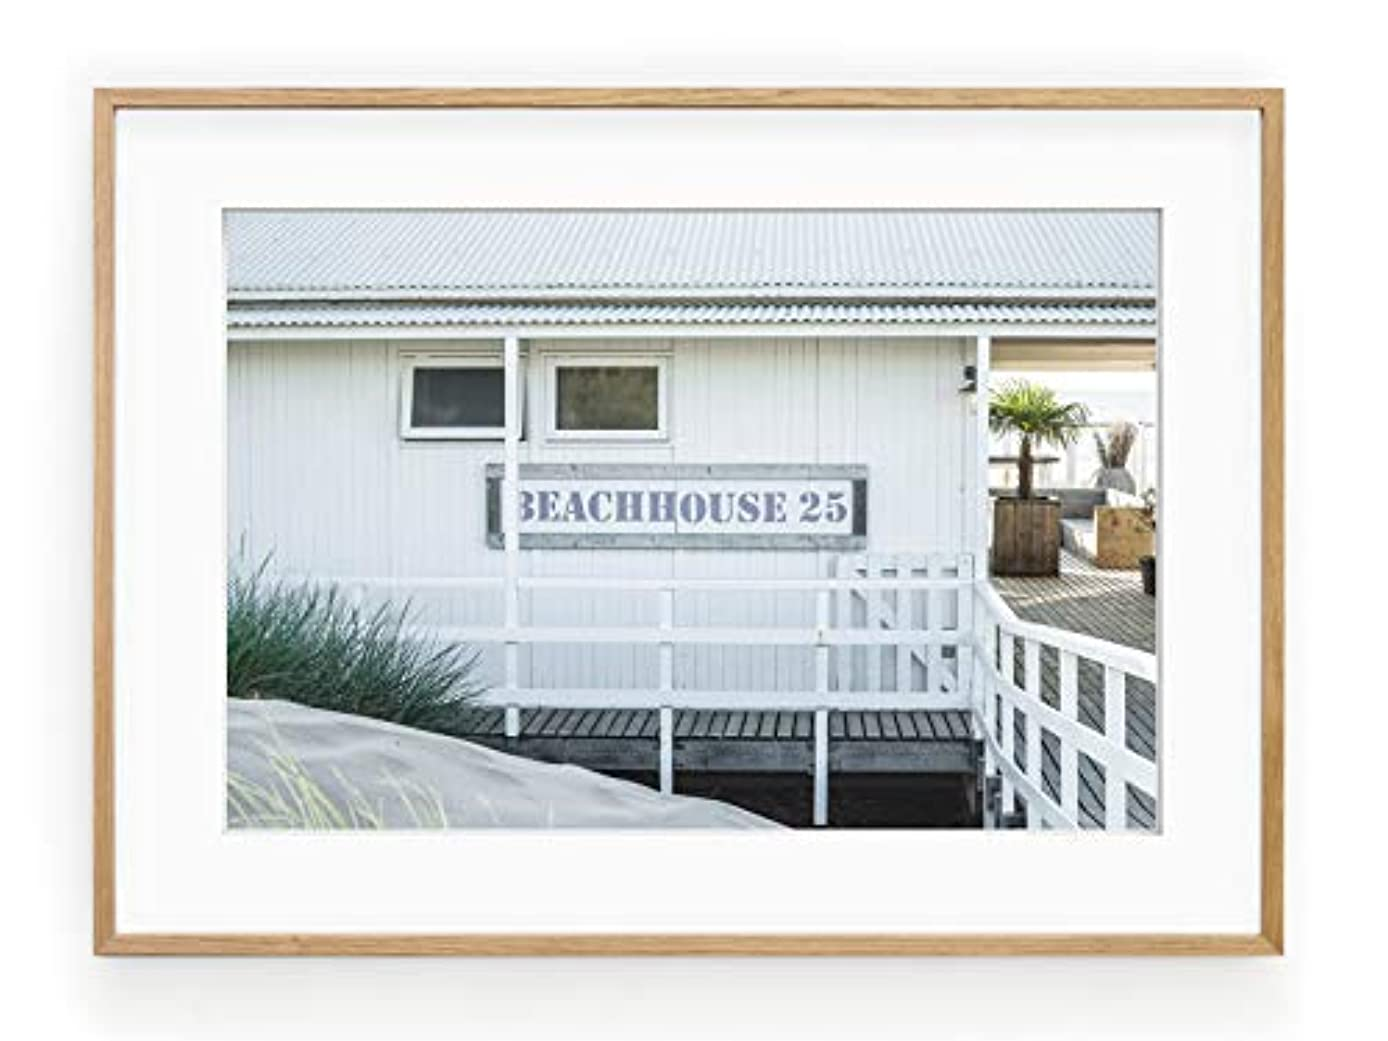 Beachouse Solid Oak Natural Frame with Mount, Multicolored, 40x50